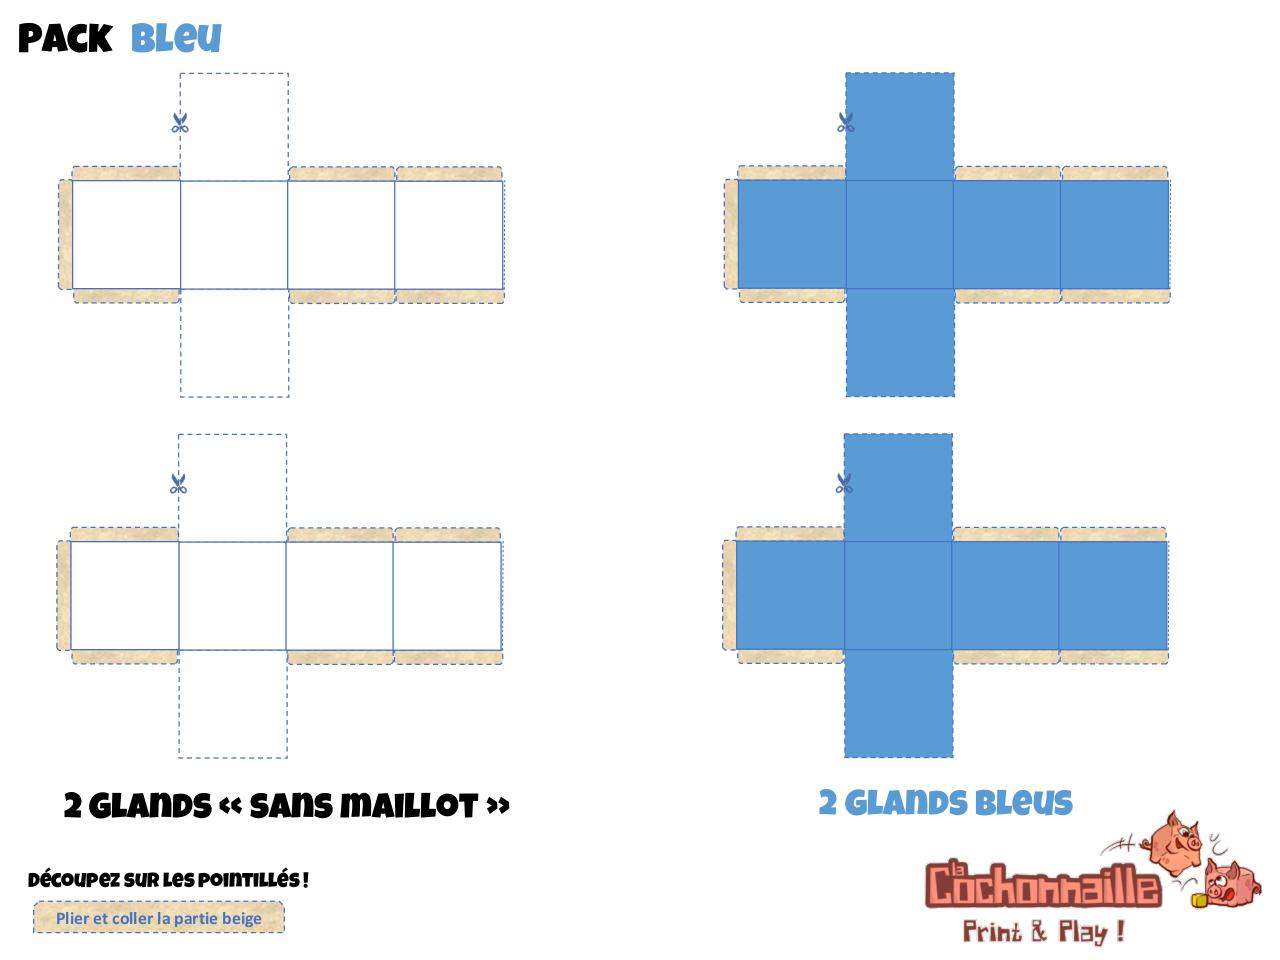 print and play cochonnaille pack bleu.pdf - page 3/9